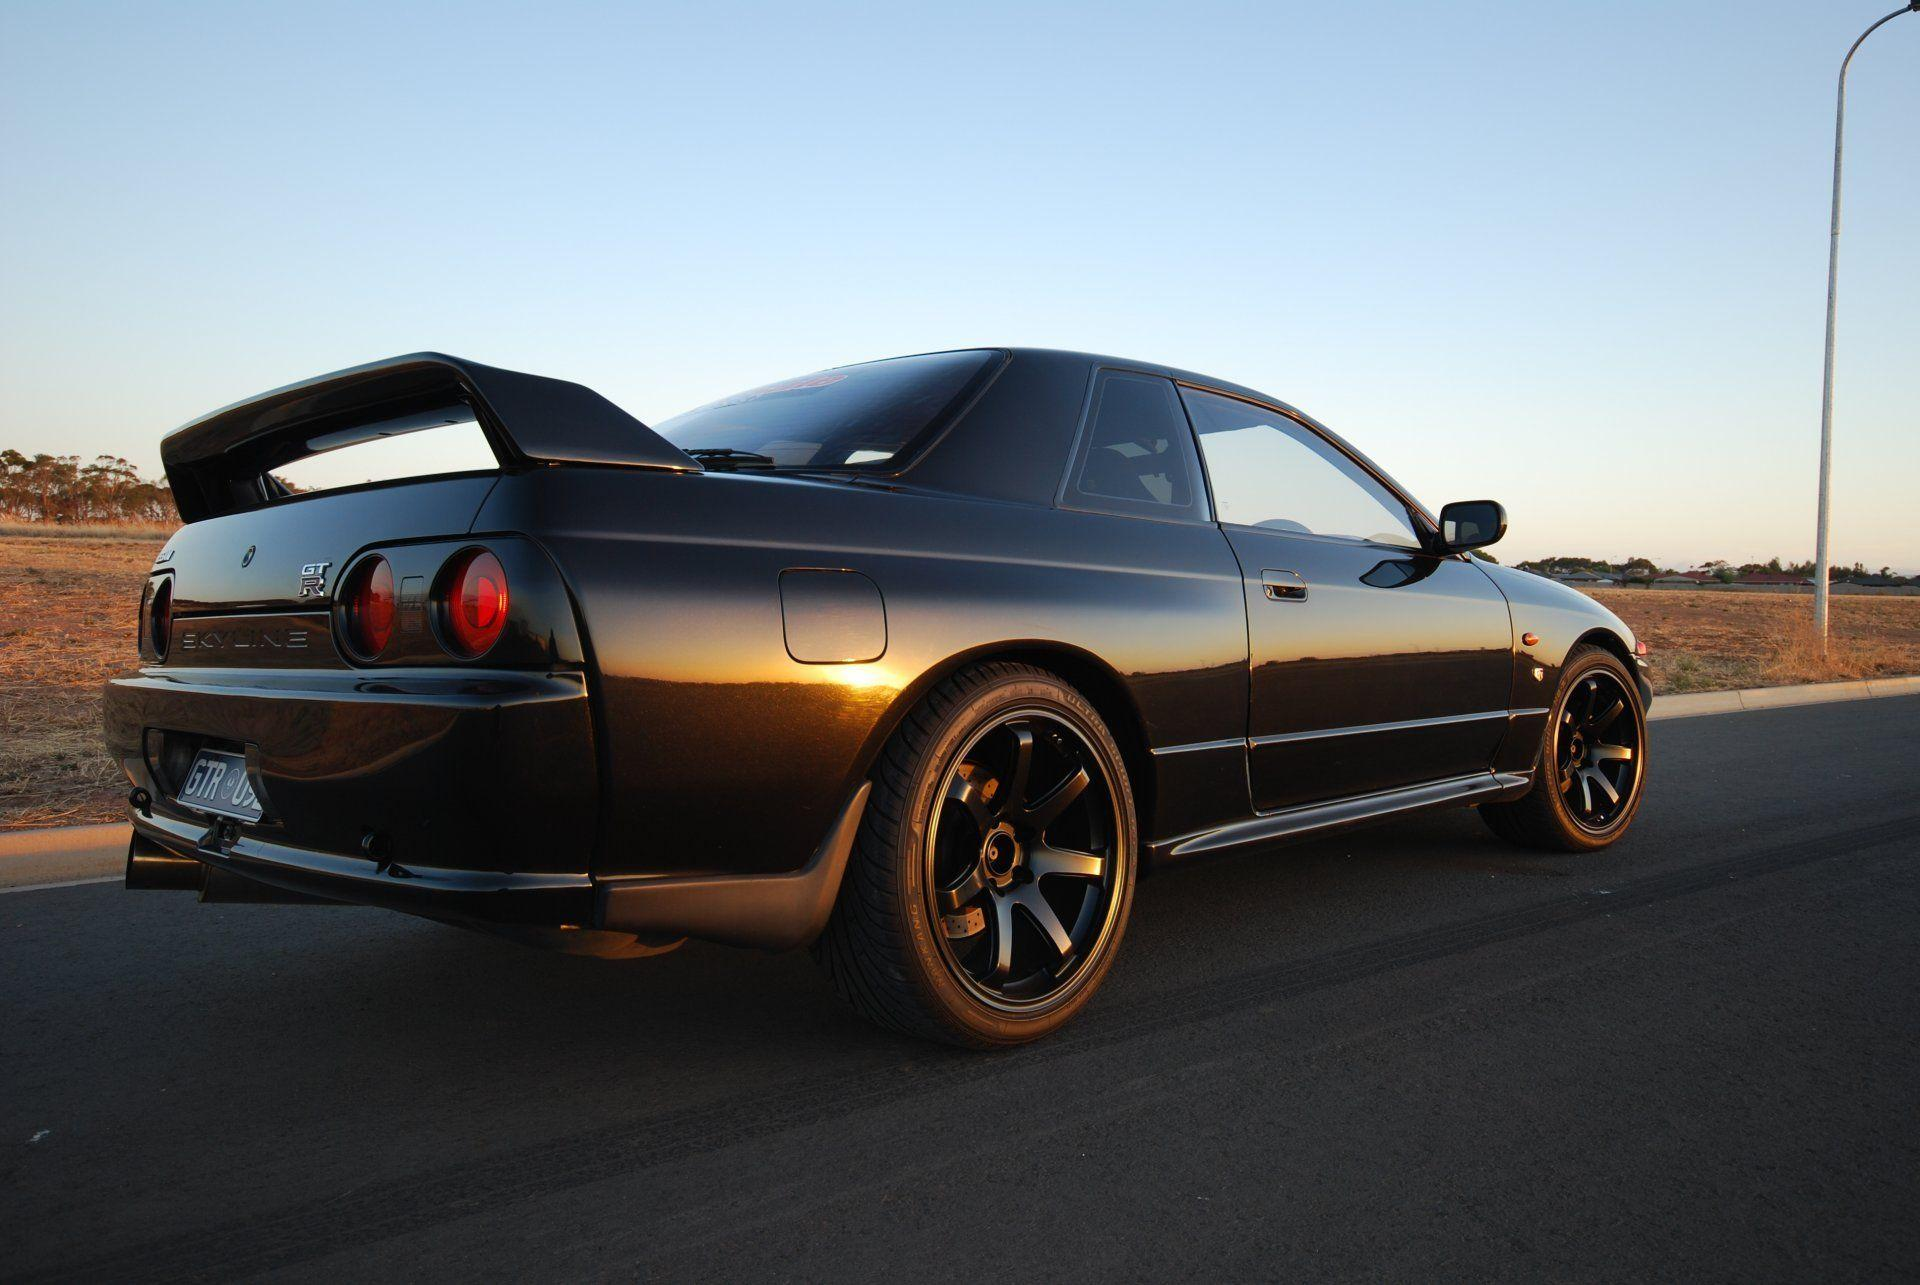 nissan skyline gt-r r32 coupe black japan wallpapers drift jdm ...